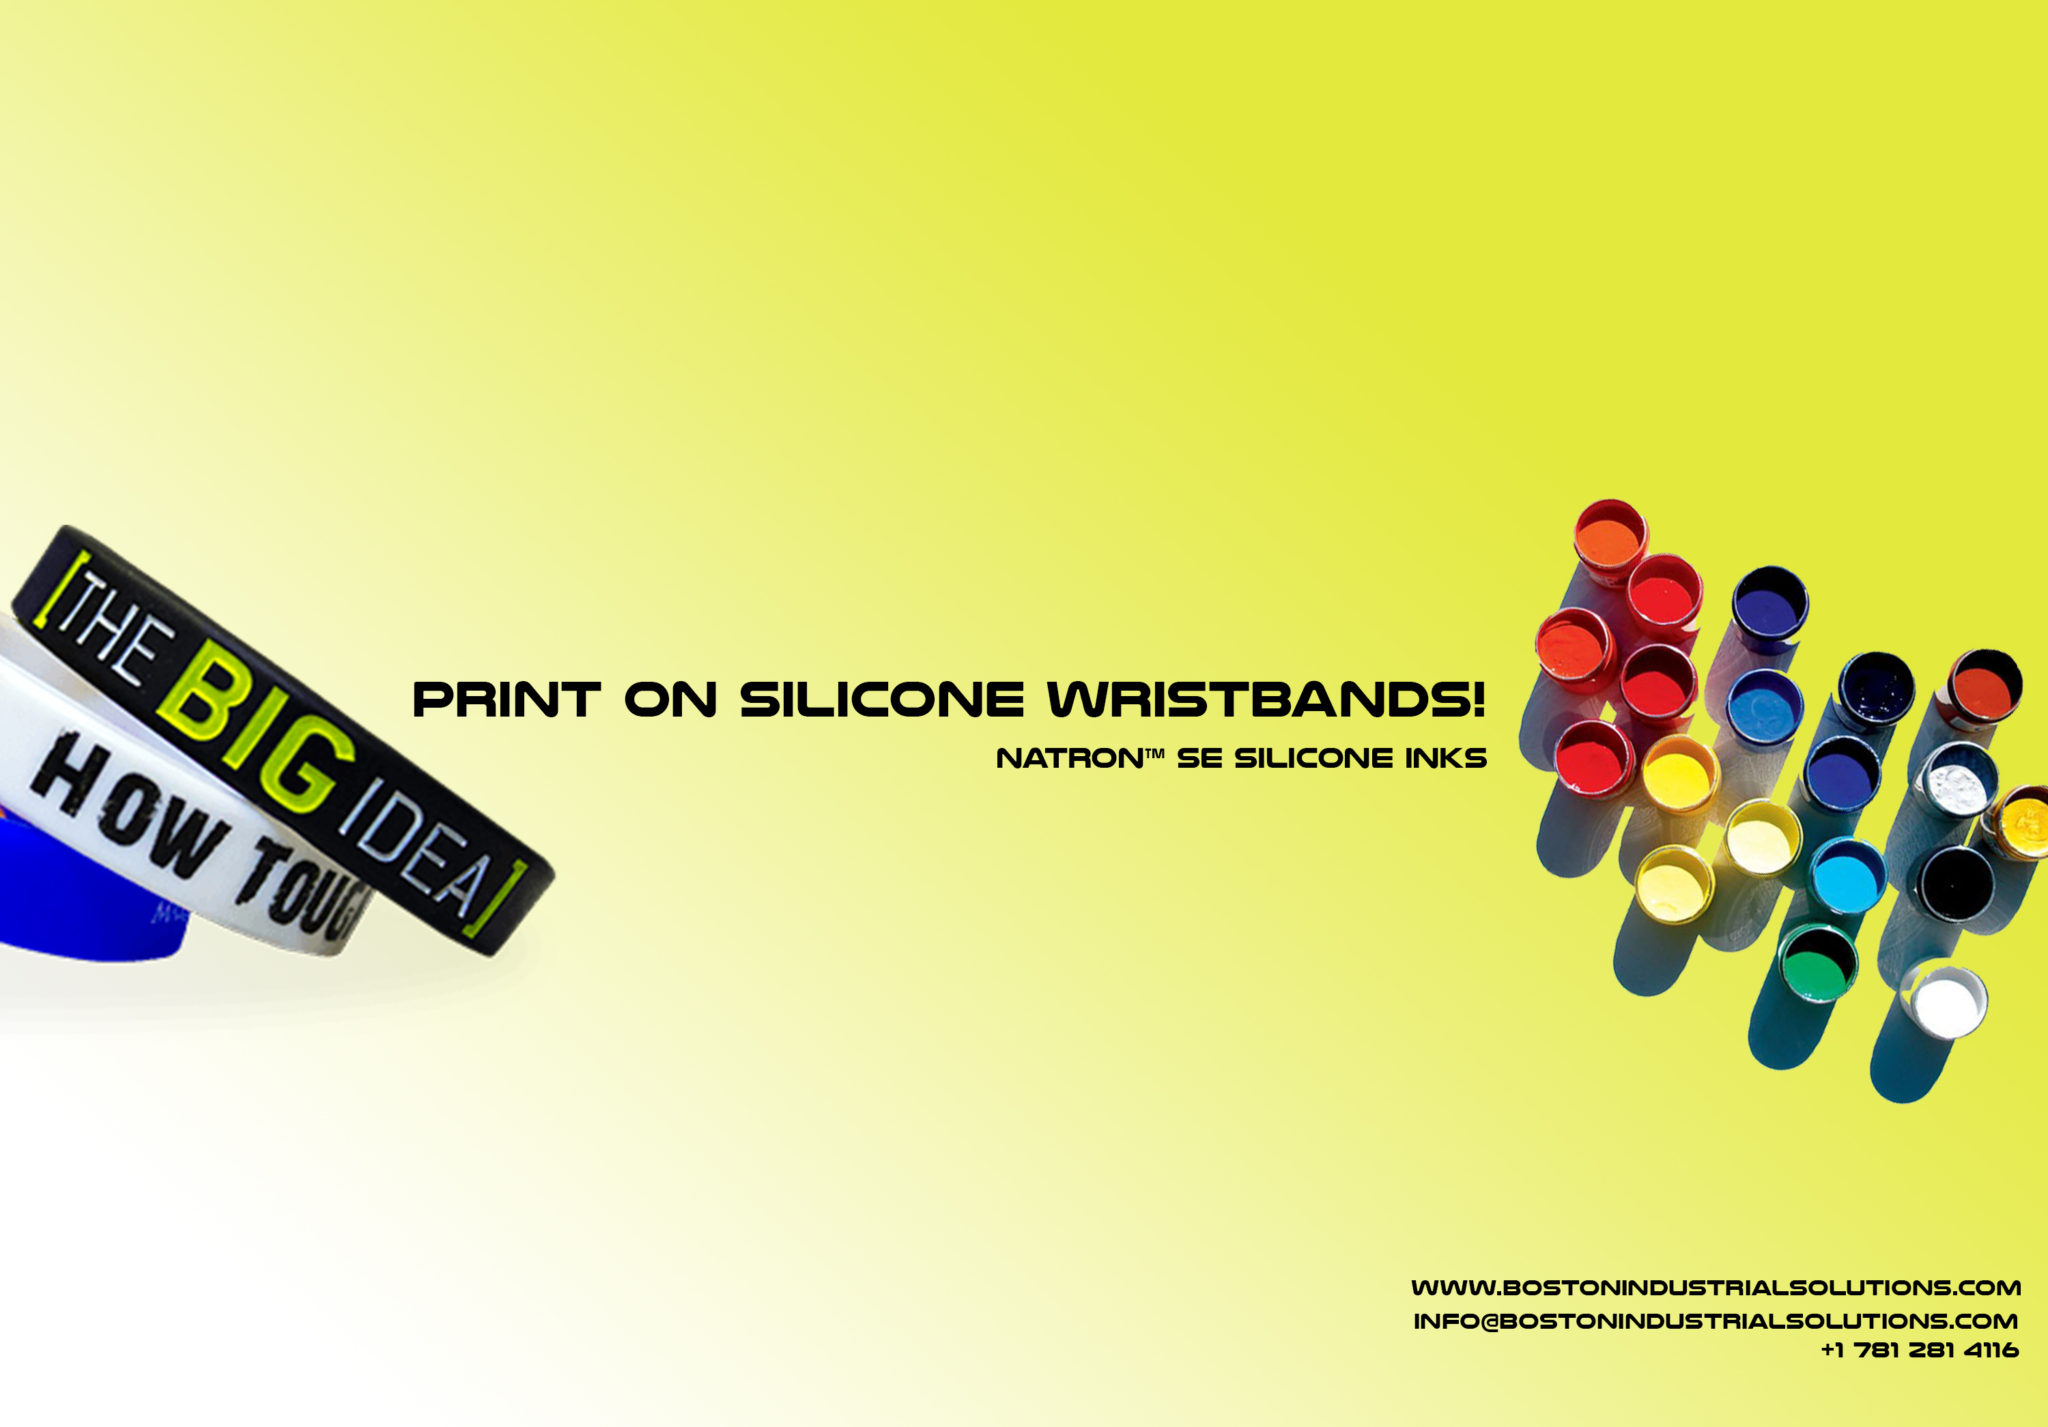 silicone ink to print on Silicone Wristbands - silicone ink